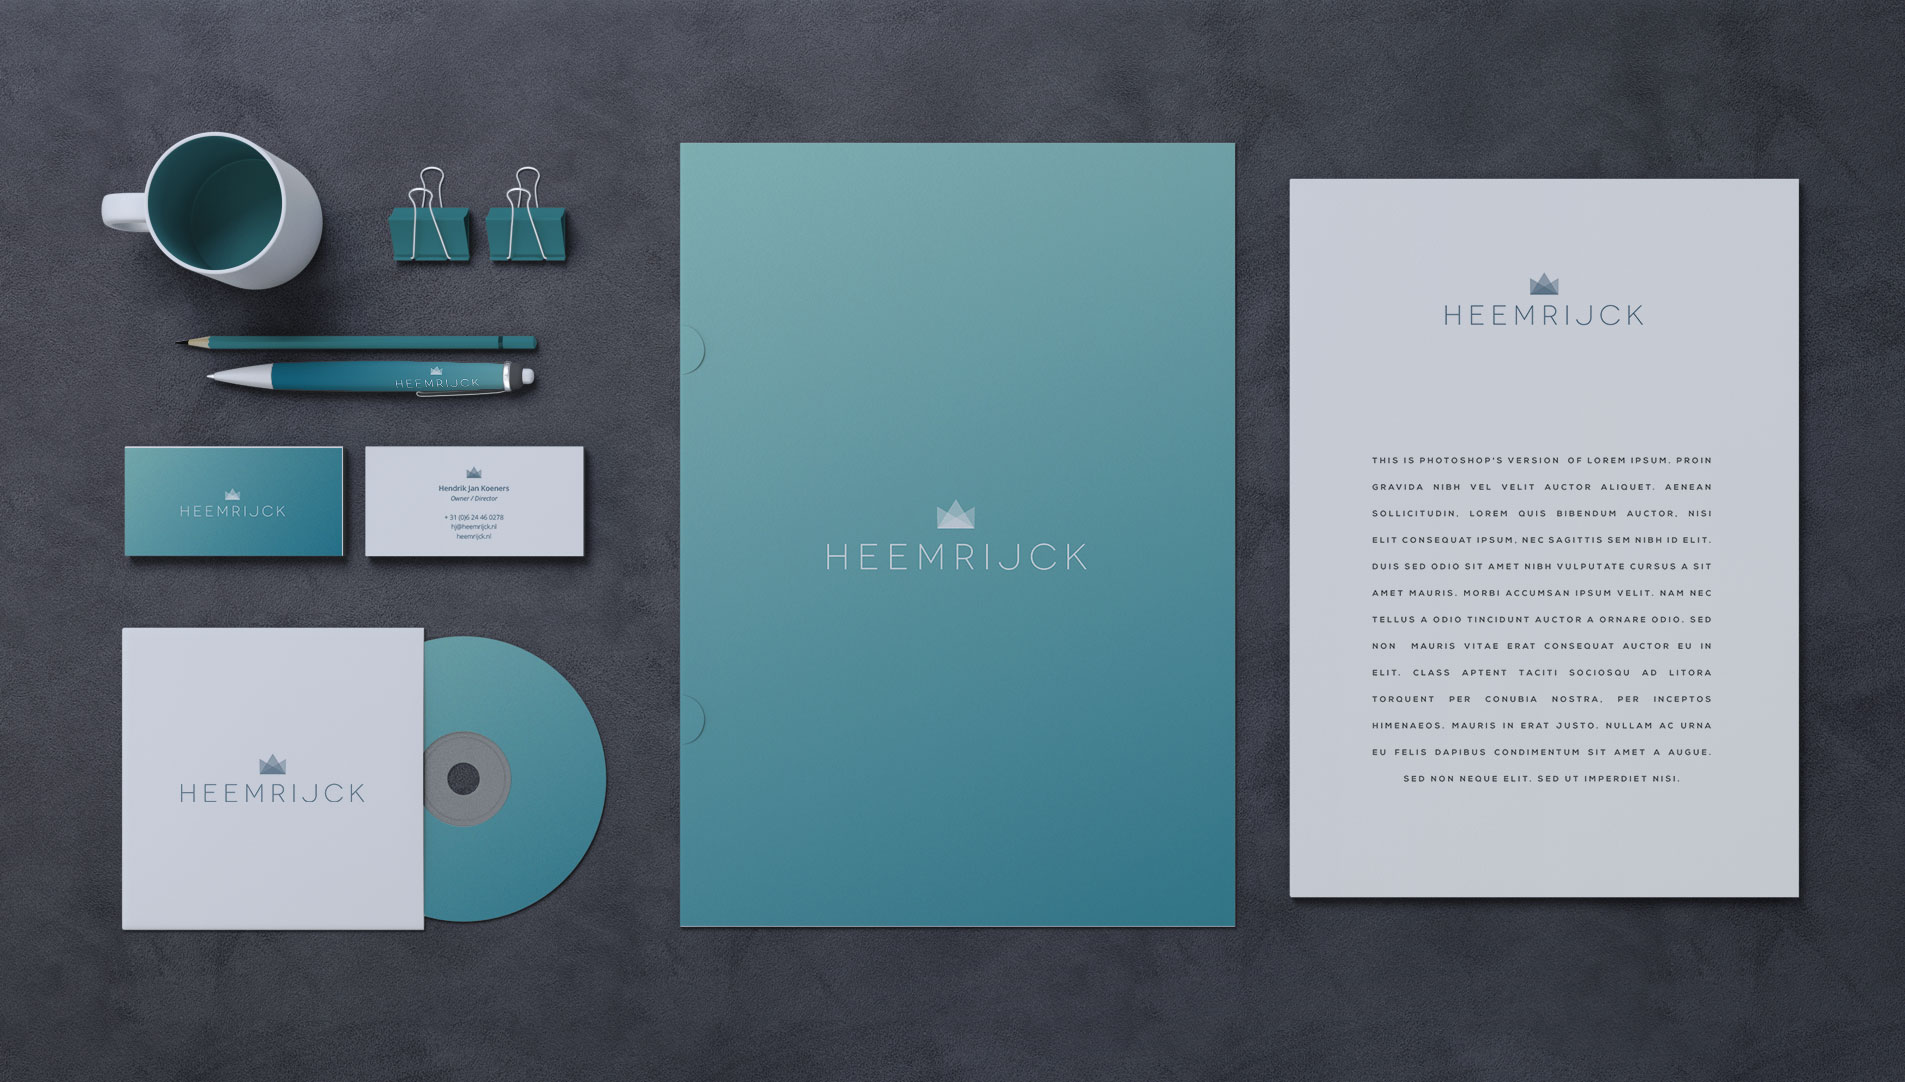 branding agency hk heemrijck slideshow 01